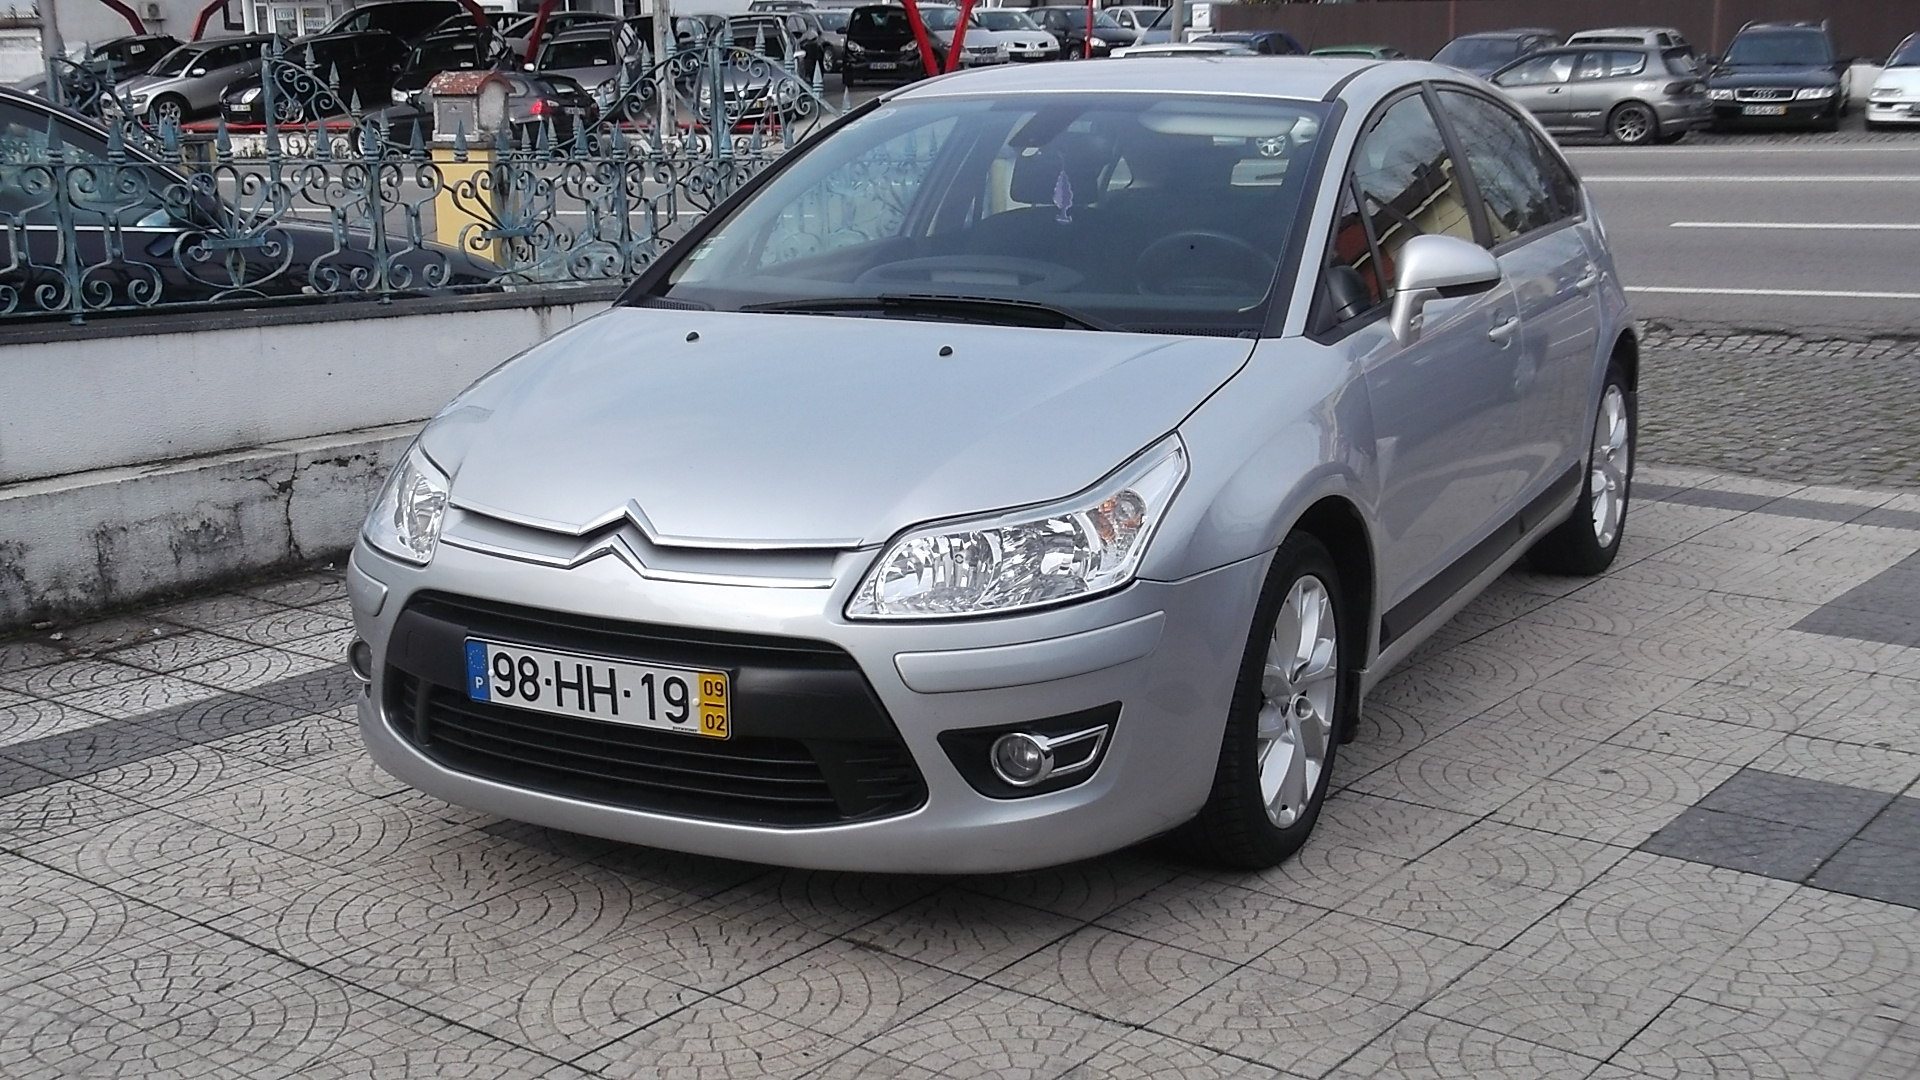 Citroën C4 1.6 HDI EXCLUSIVE